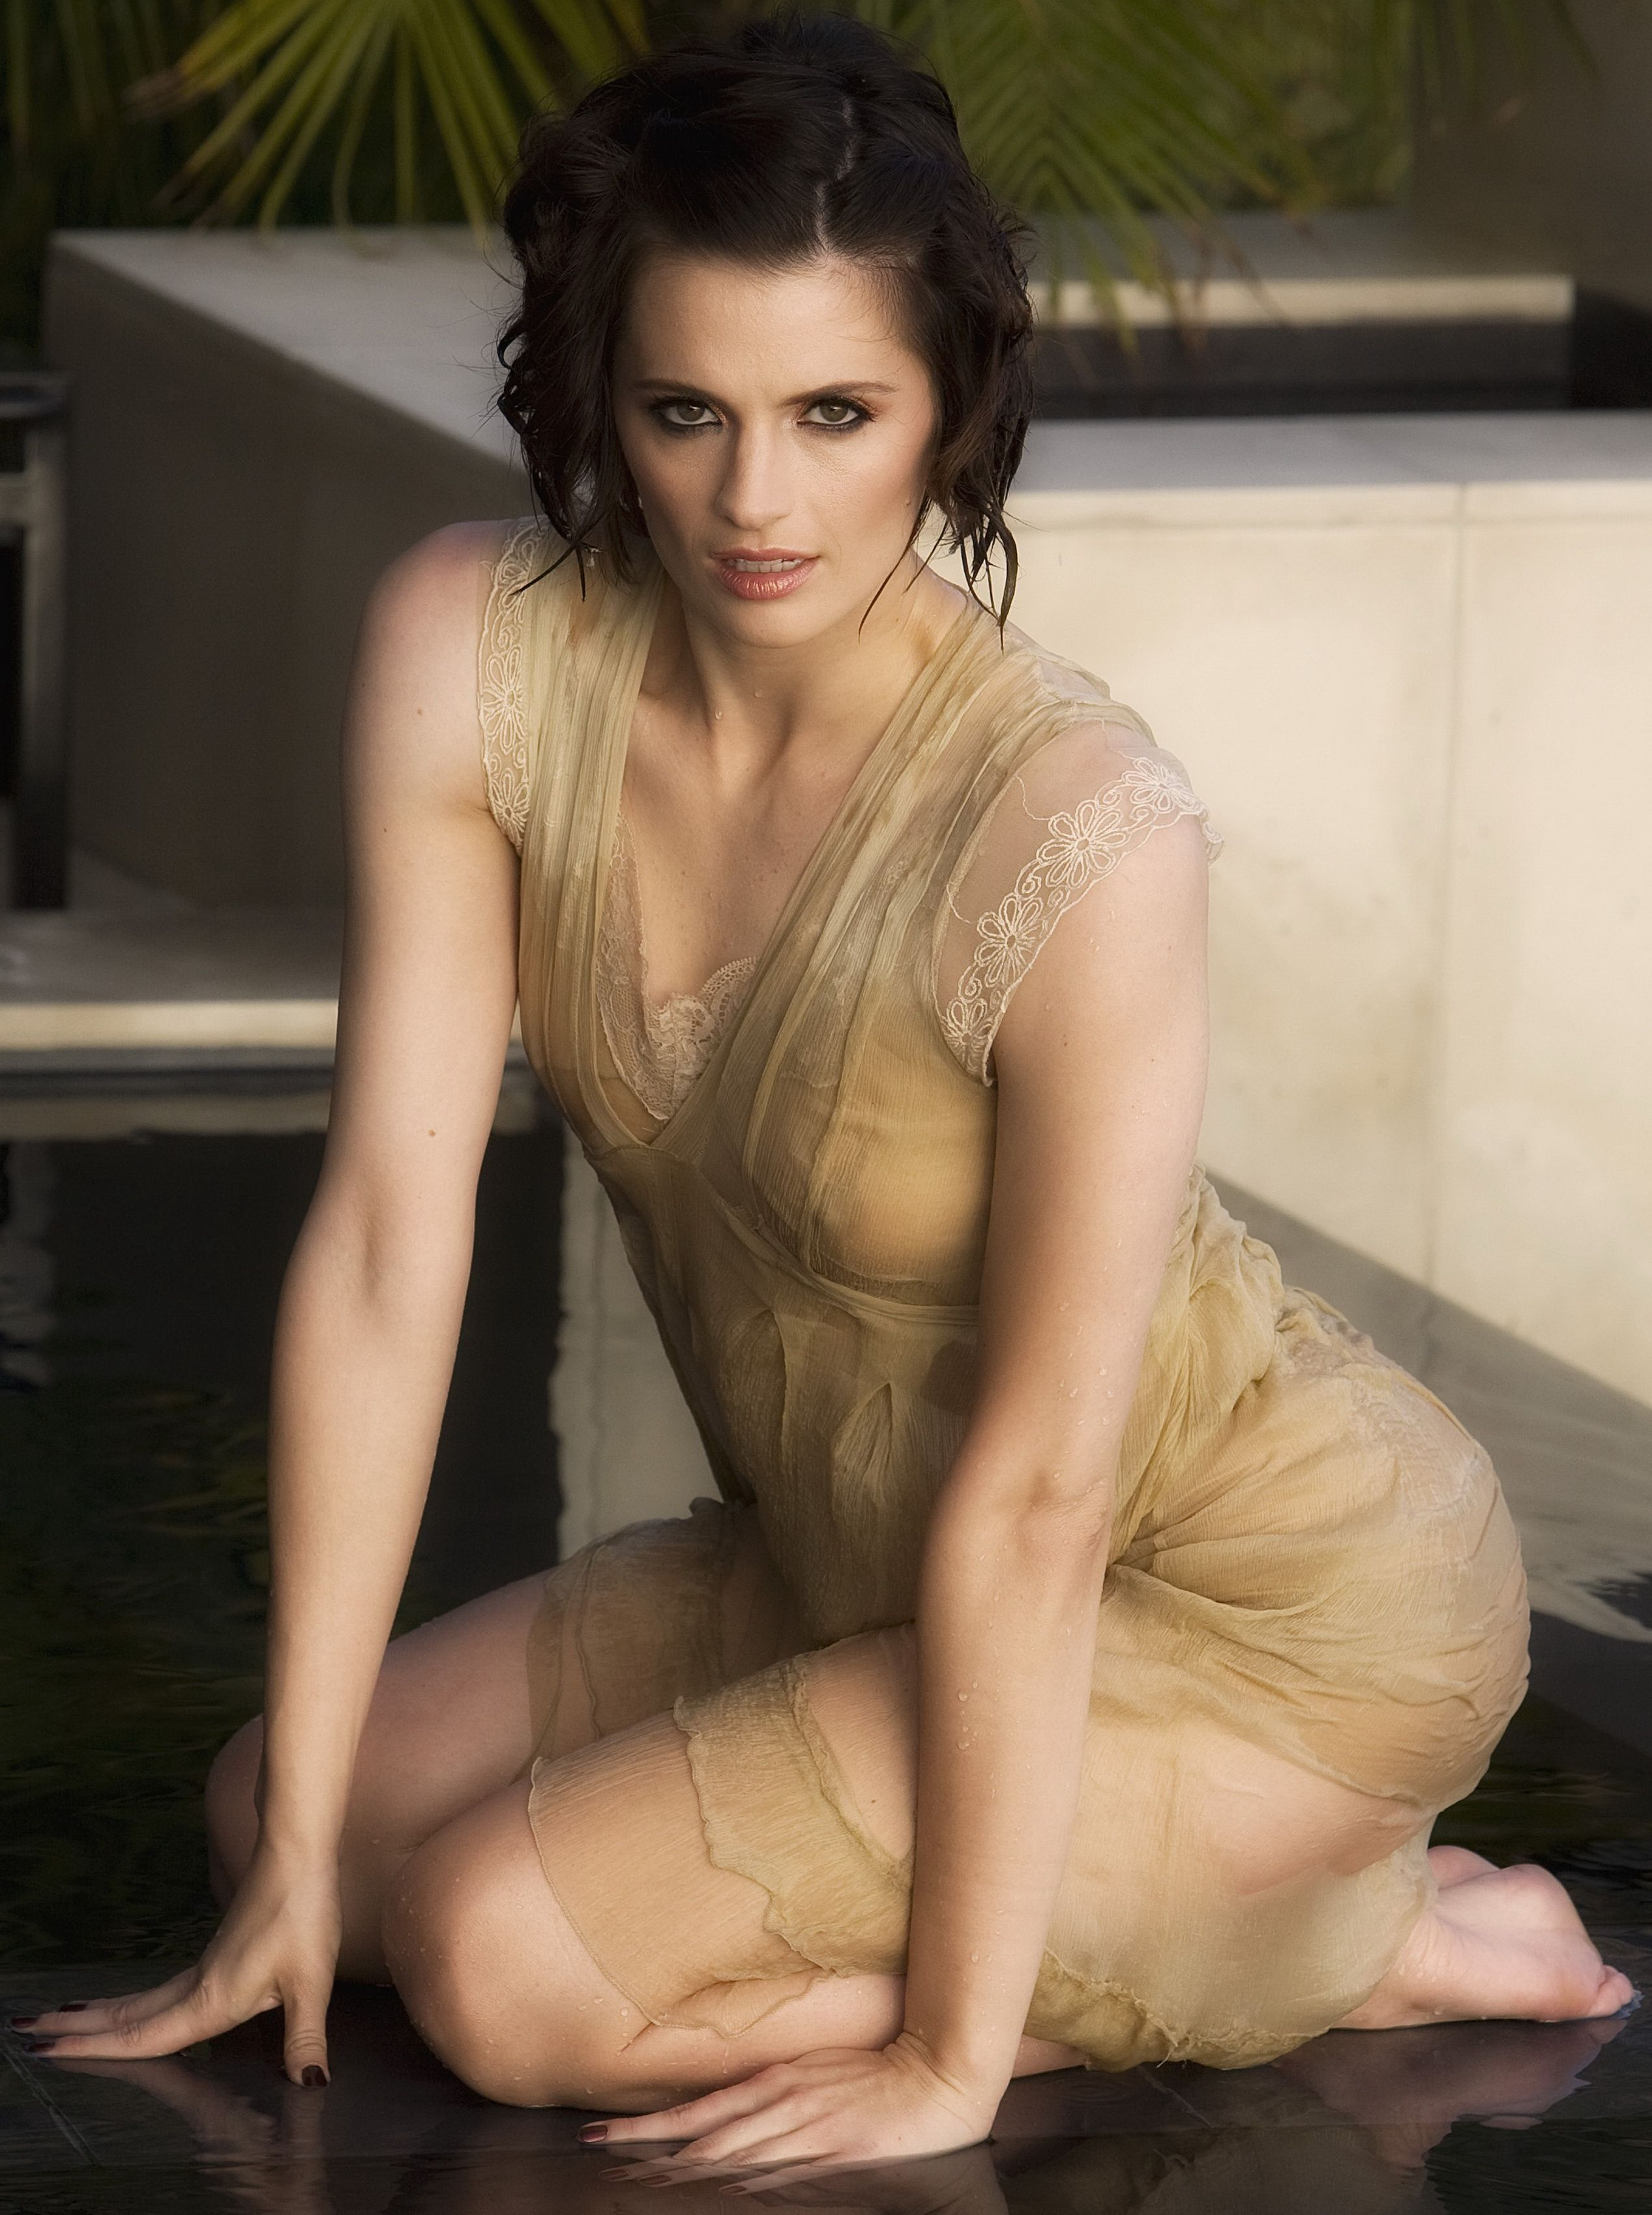 Stana katic naked photoshoot — pic 6